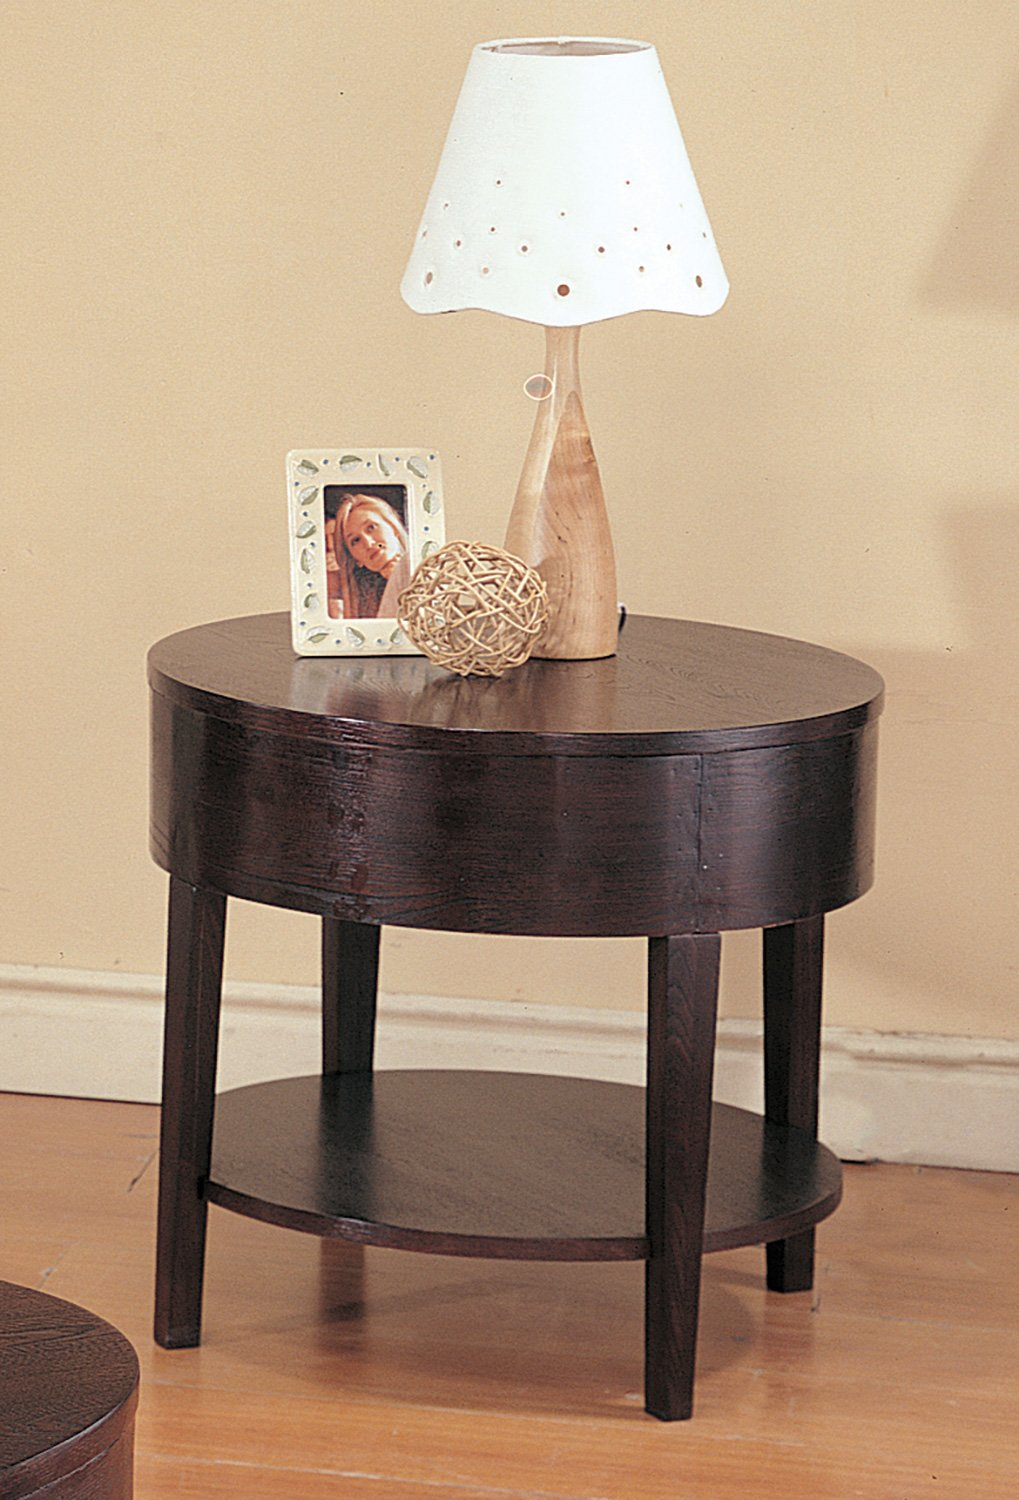 Pleasant Coaster Home Furnishings Co Gough Round End Table With Shelf Cappuccino Alphanode Cool Chair Designs And Ideas Alphanodeonline